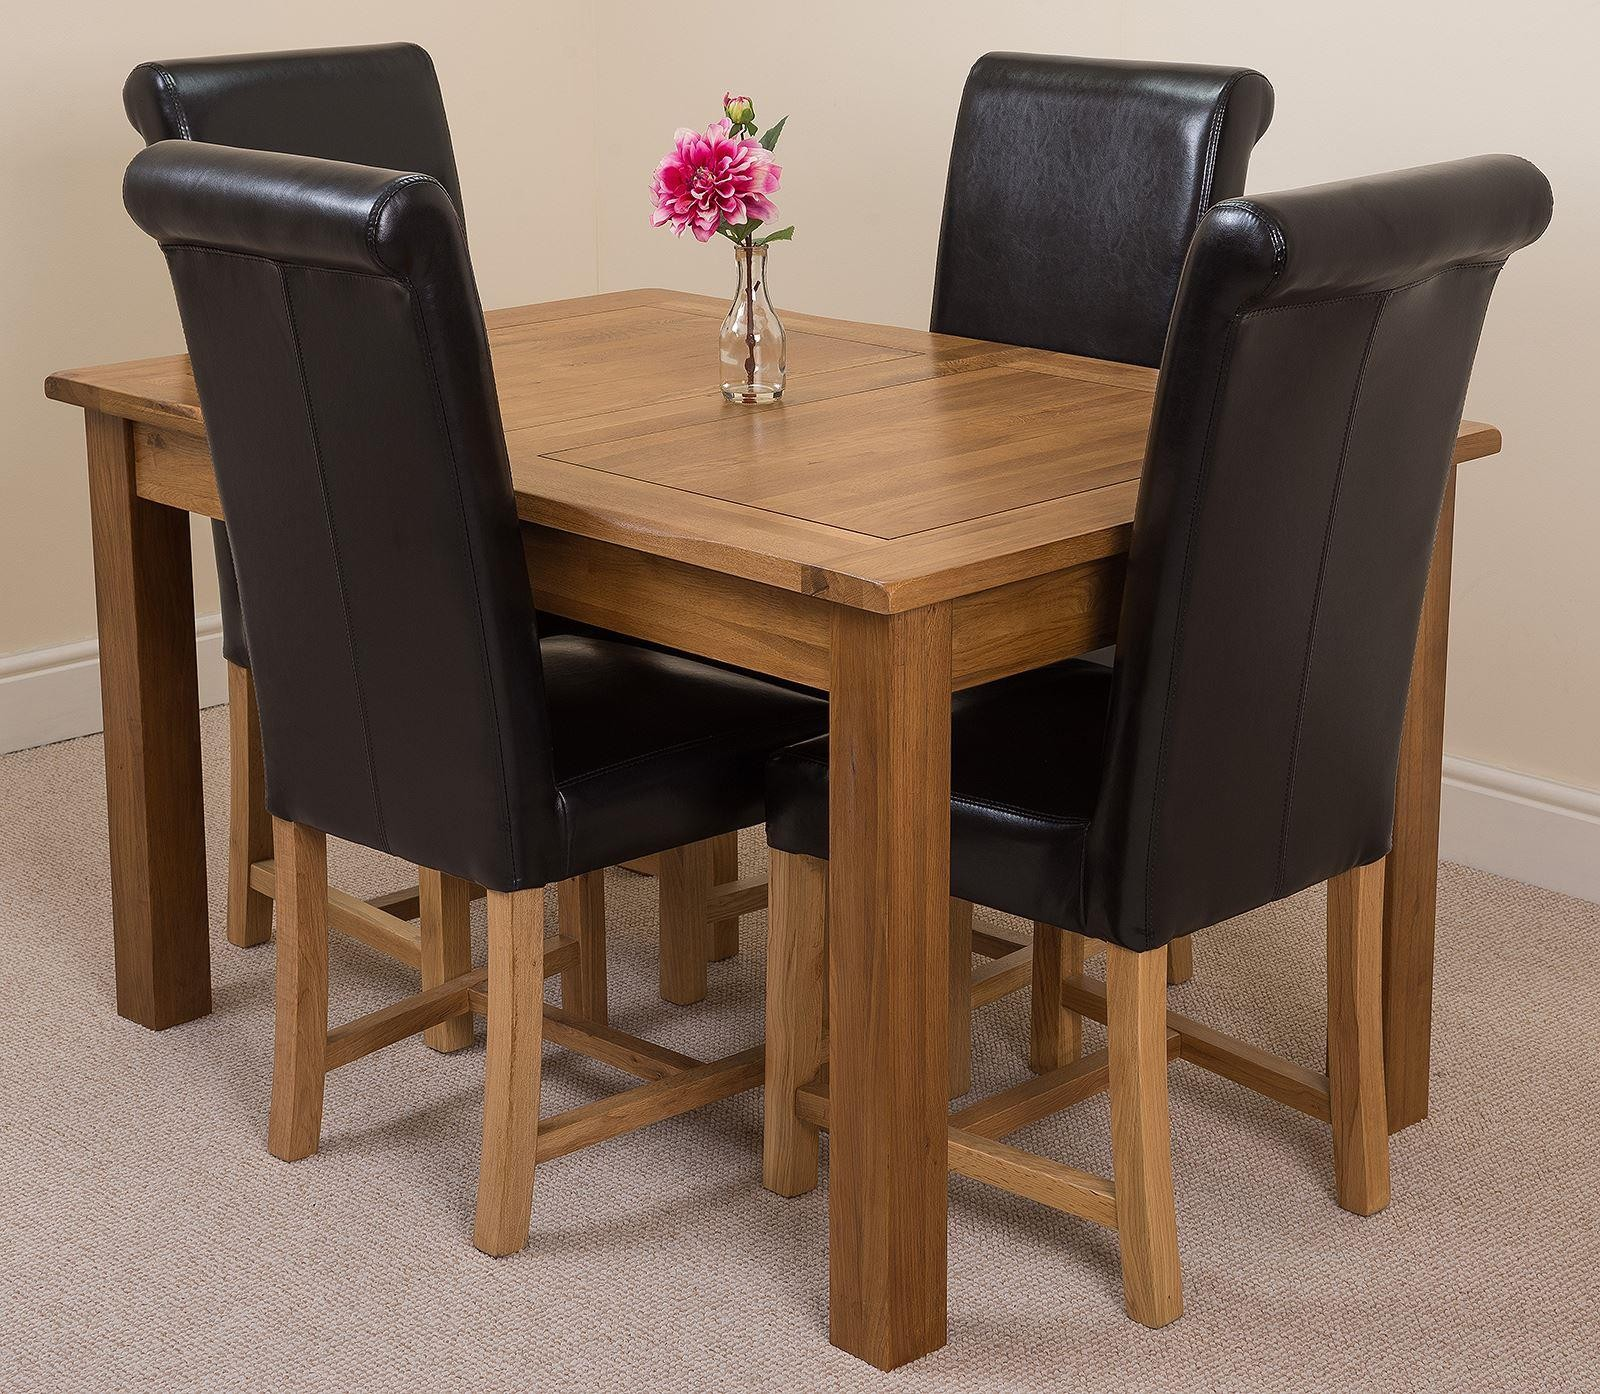 Cotswold Rustic Solid Oak 132cm-198cm Extending Farmhouse Dining Table with 4 Washington Dining Chairs [Black Leather]